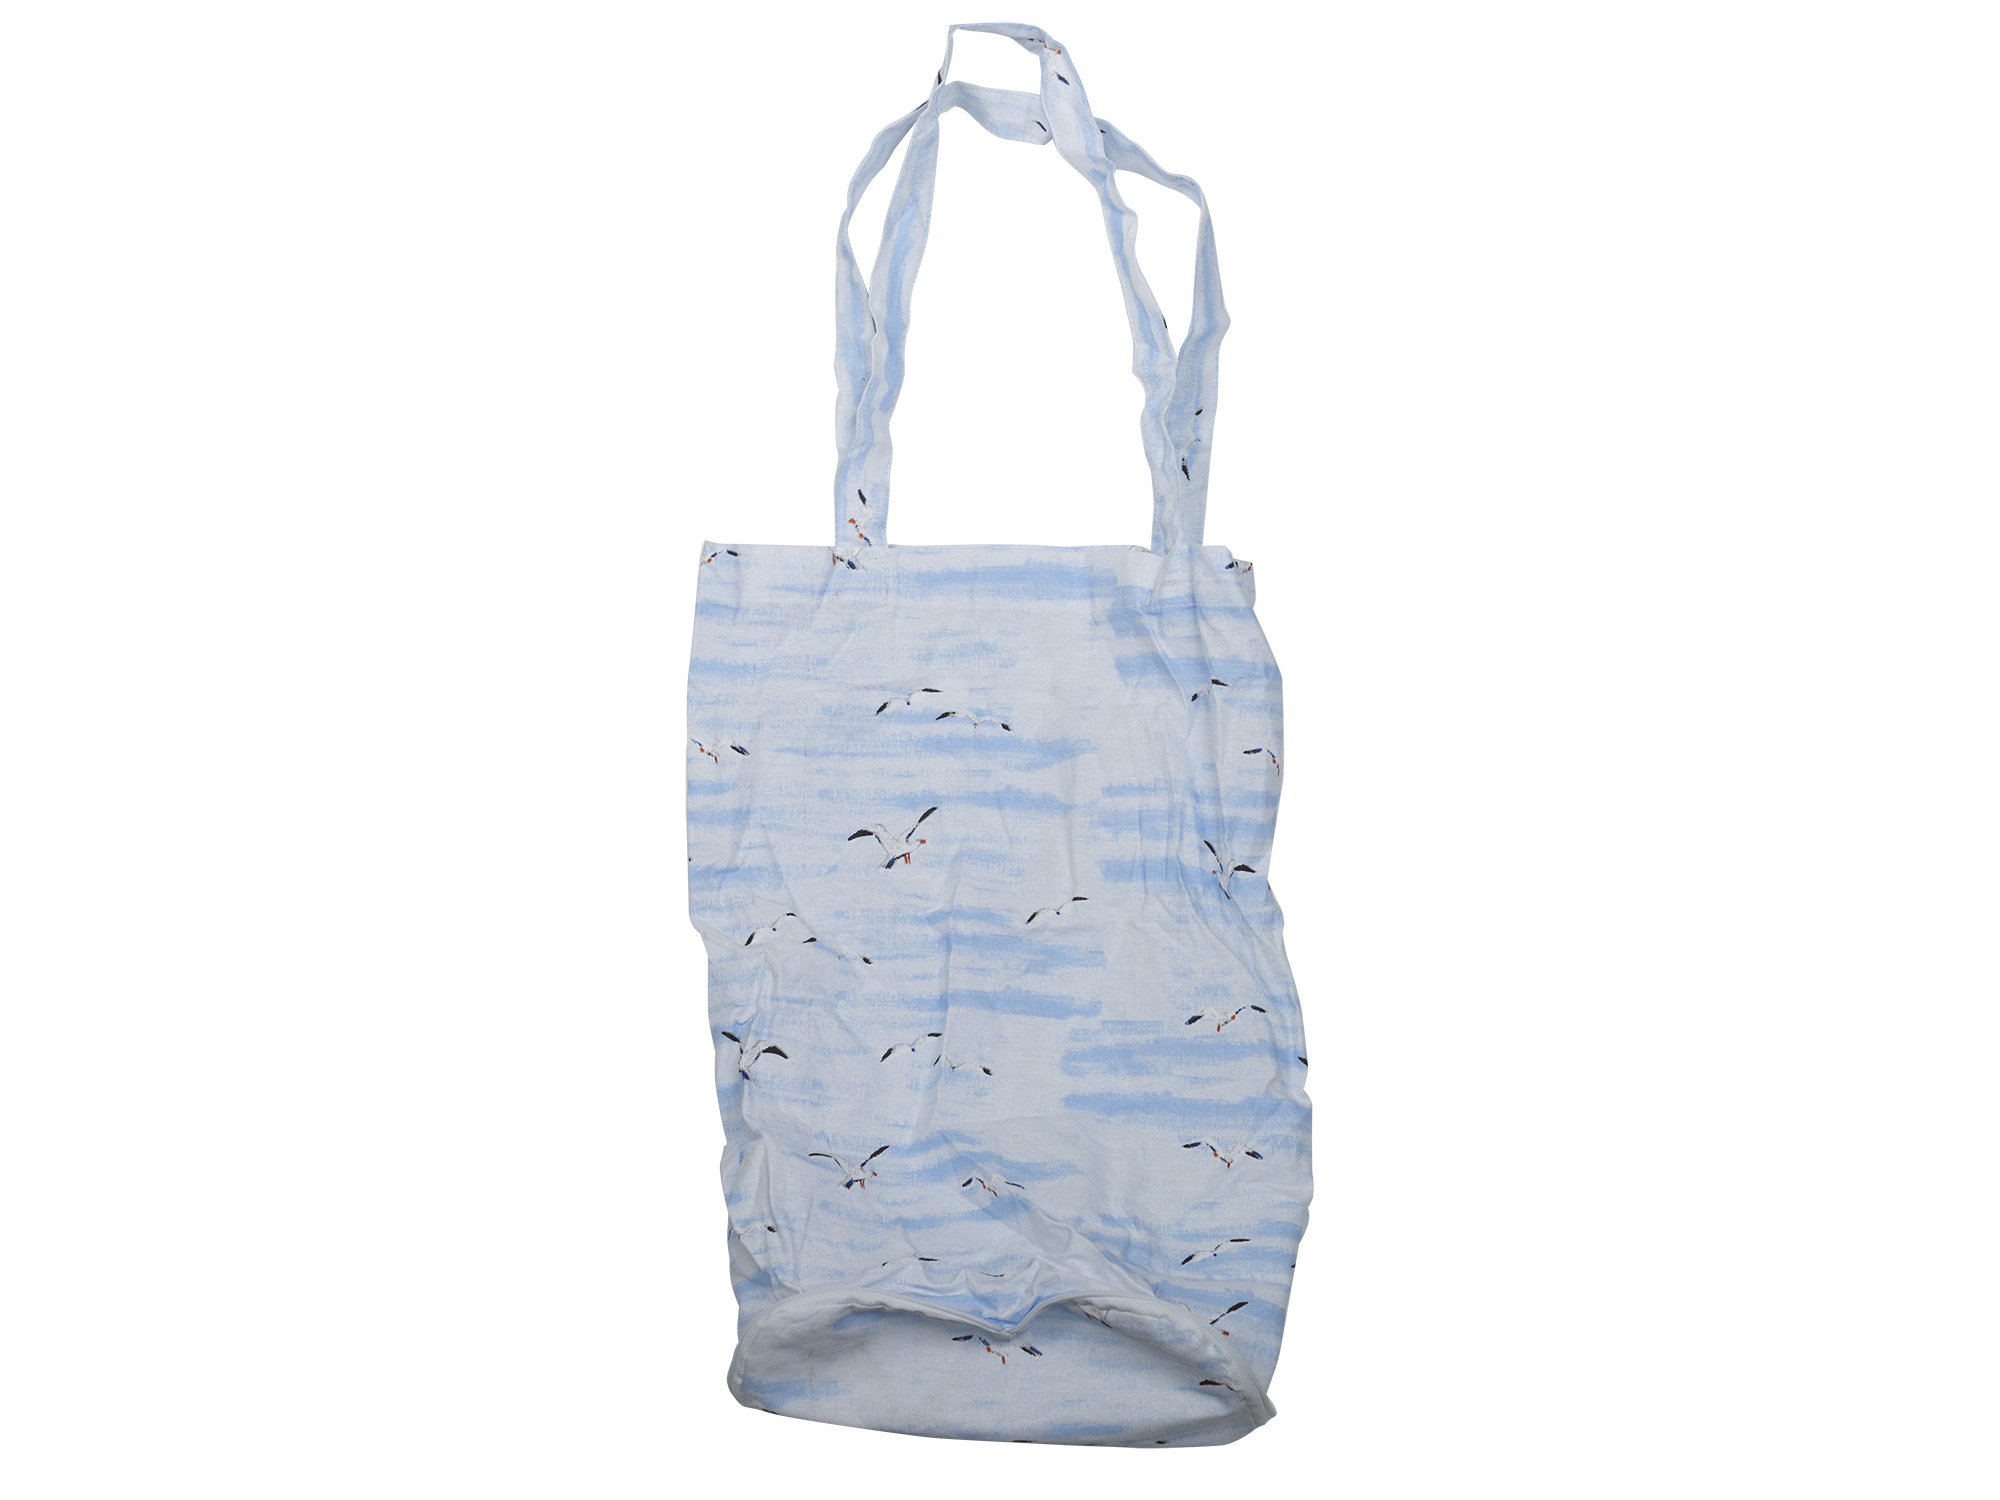 Creative Tops Cornish Harbour Foldaway Bag